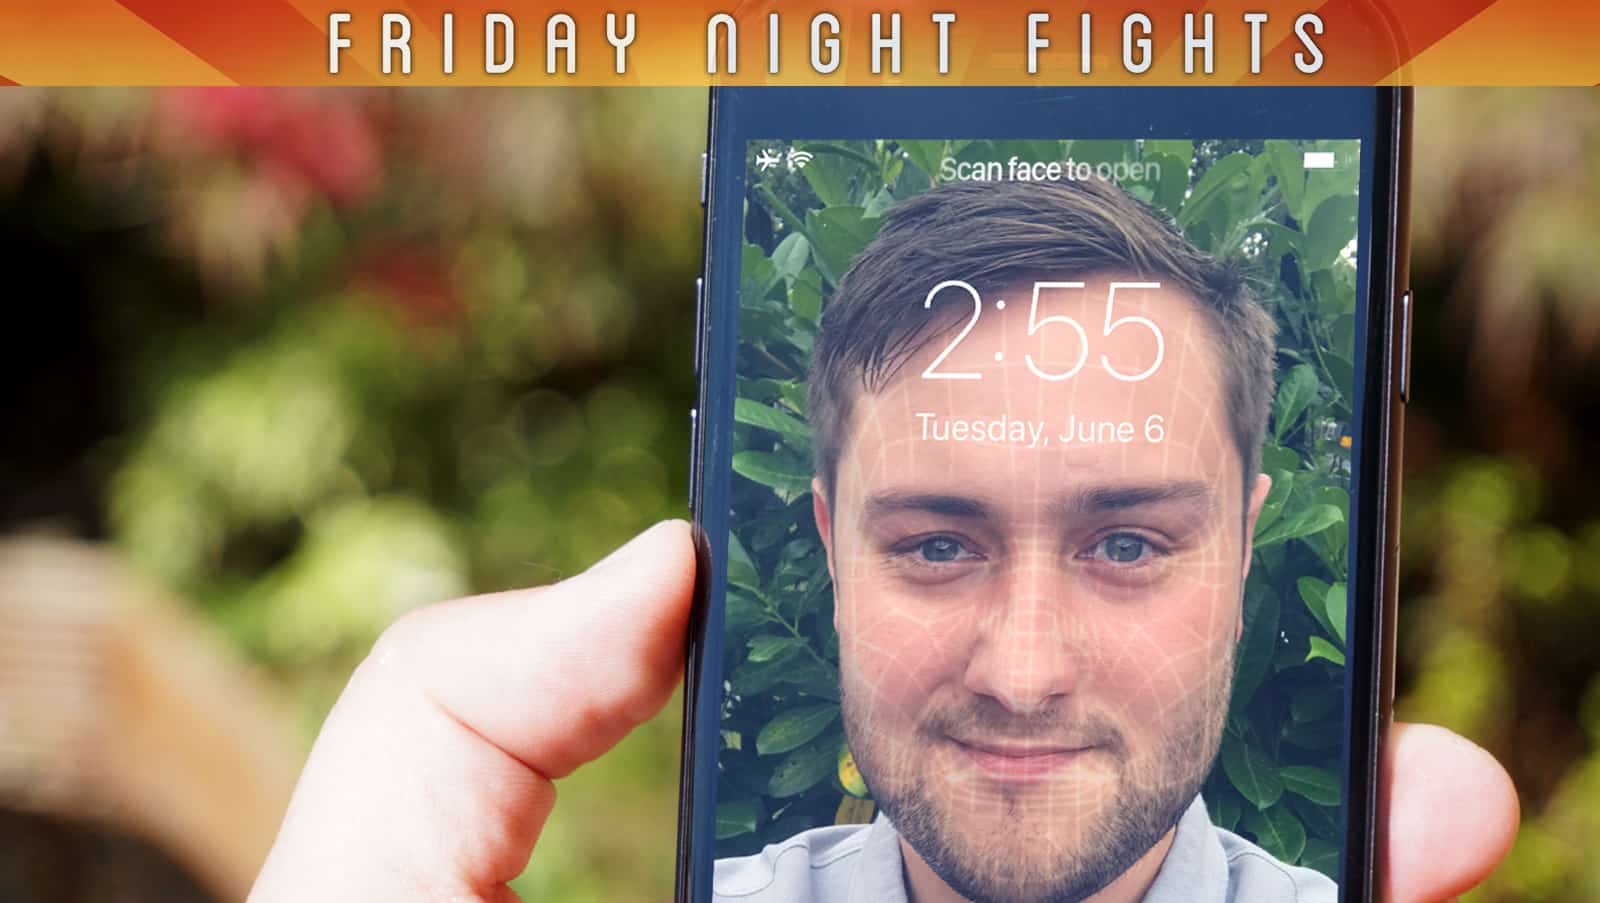 Can Facial Recognition Replace Touch ID? [Friday Night Fights]